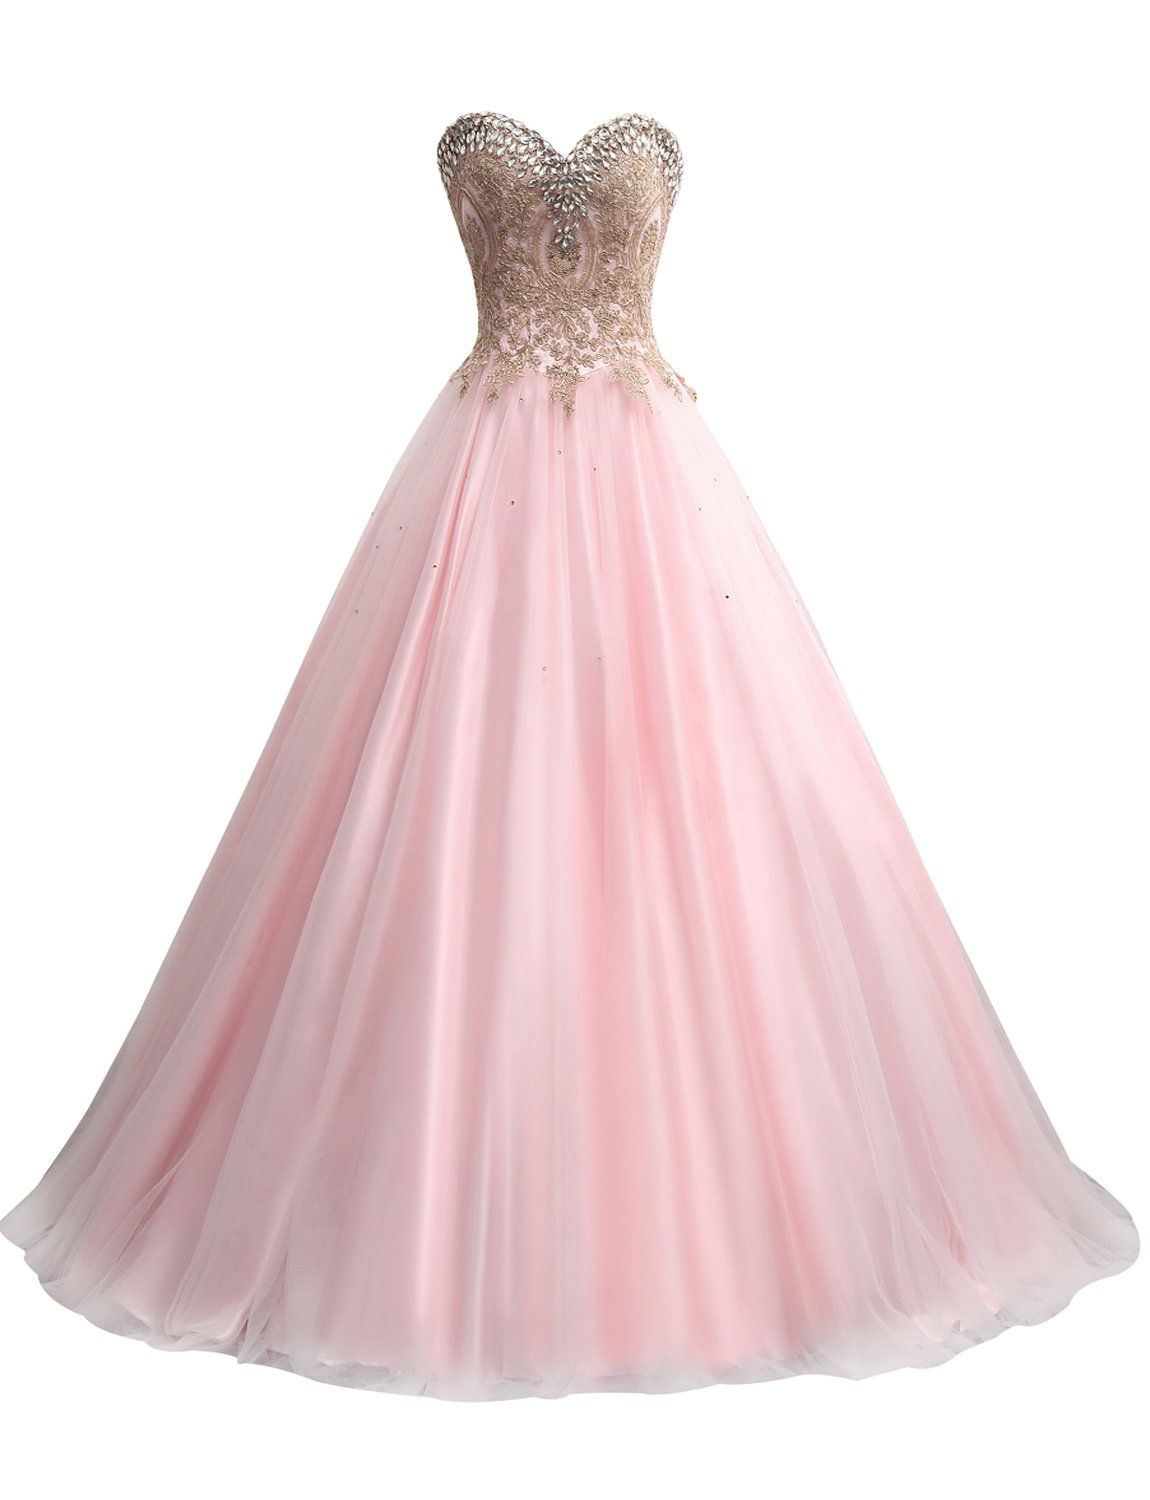 Erosebridal Gold Embroidery Ball Gown Quinceanera Dresses Sweet 15 ...